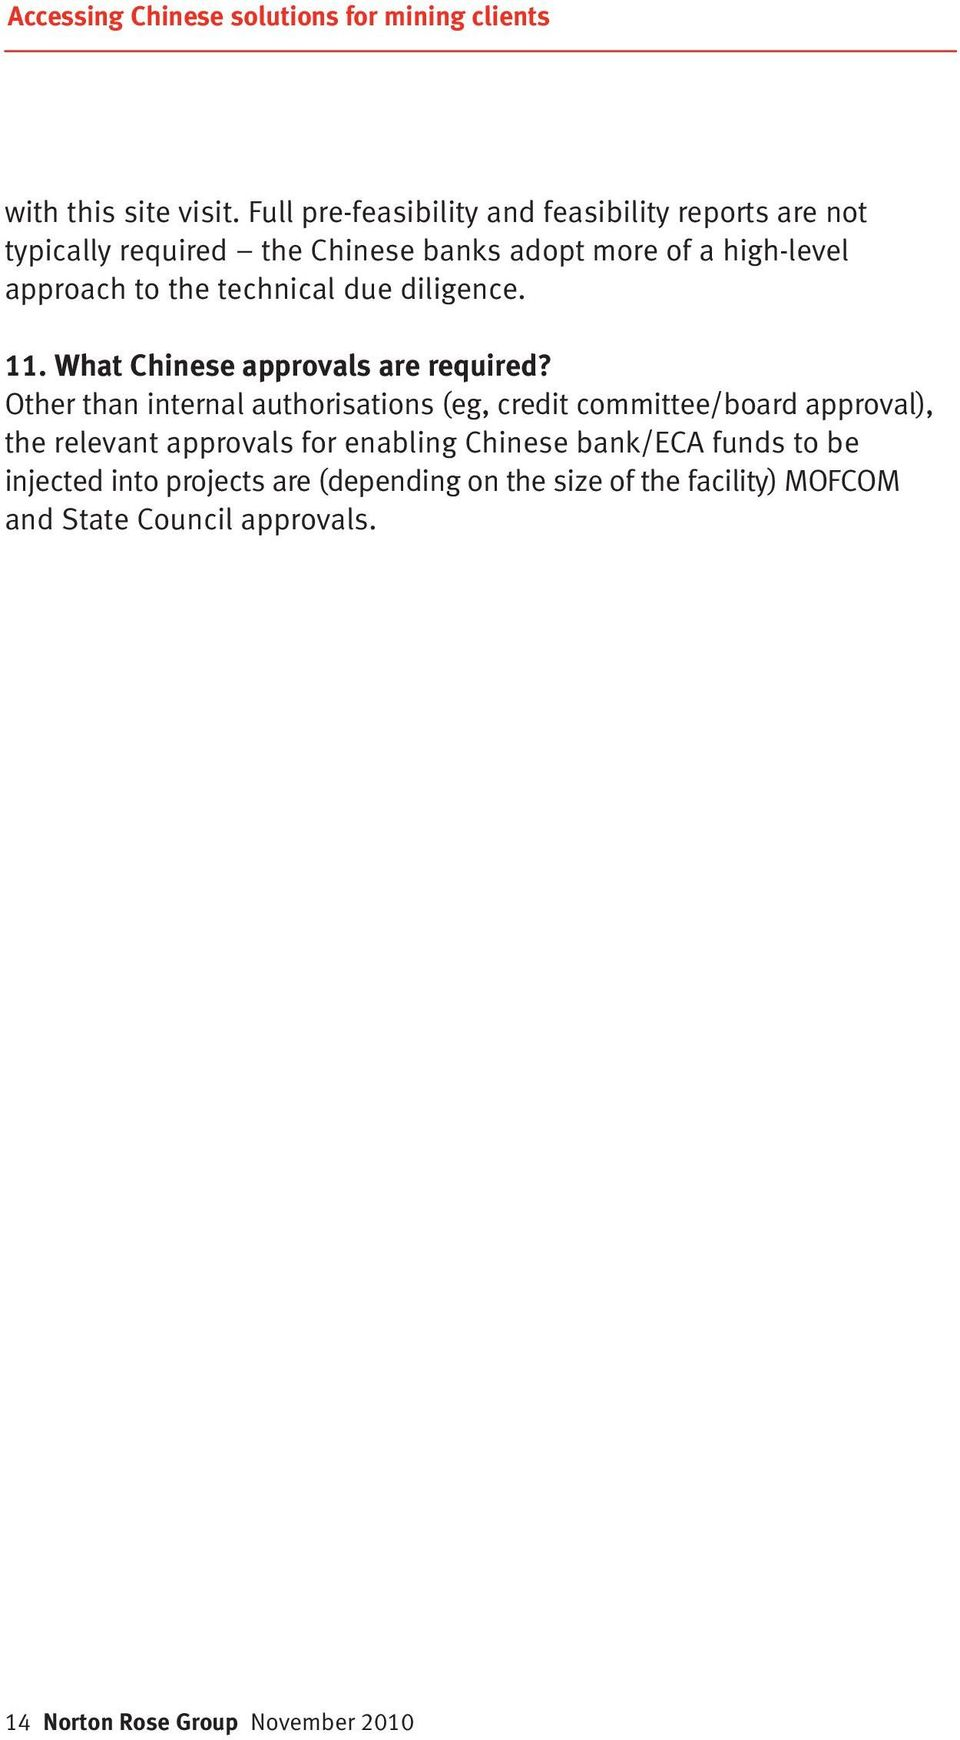 technical due diligence. 11. What Chinese approvals are required?